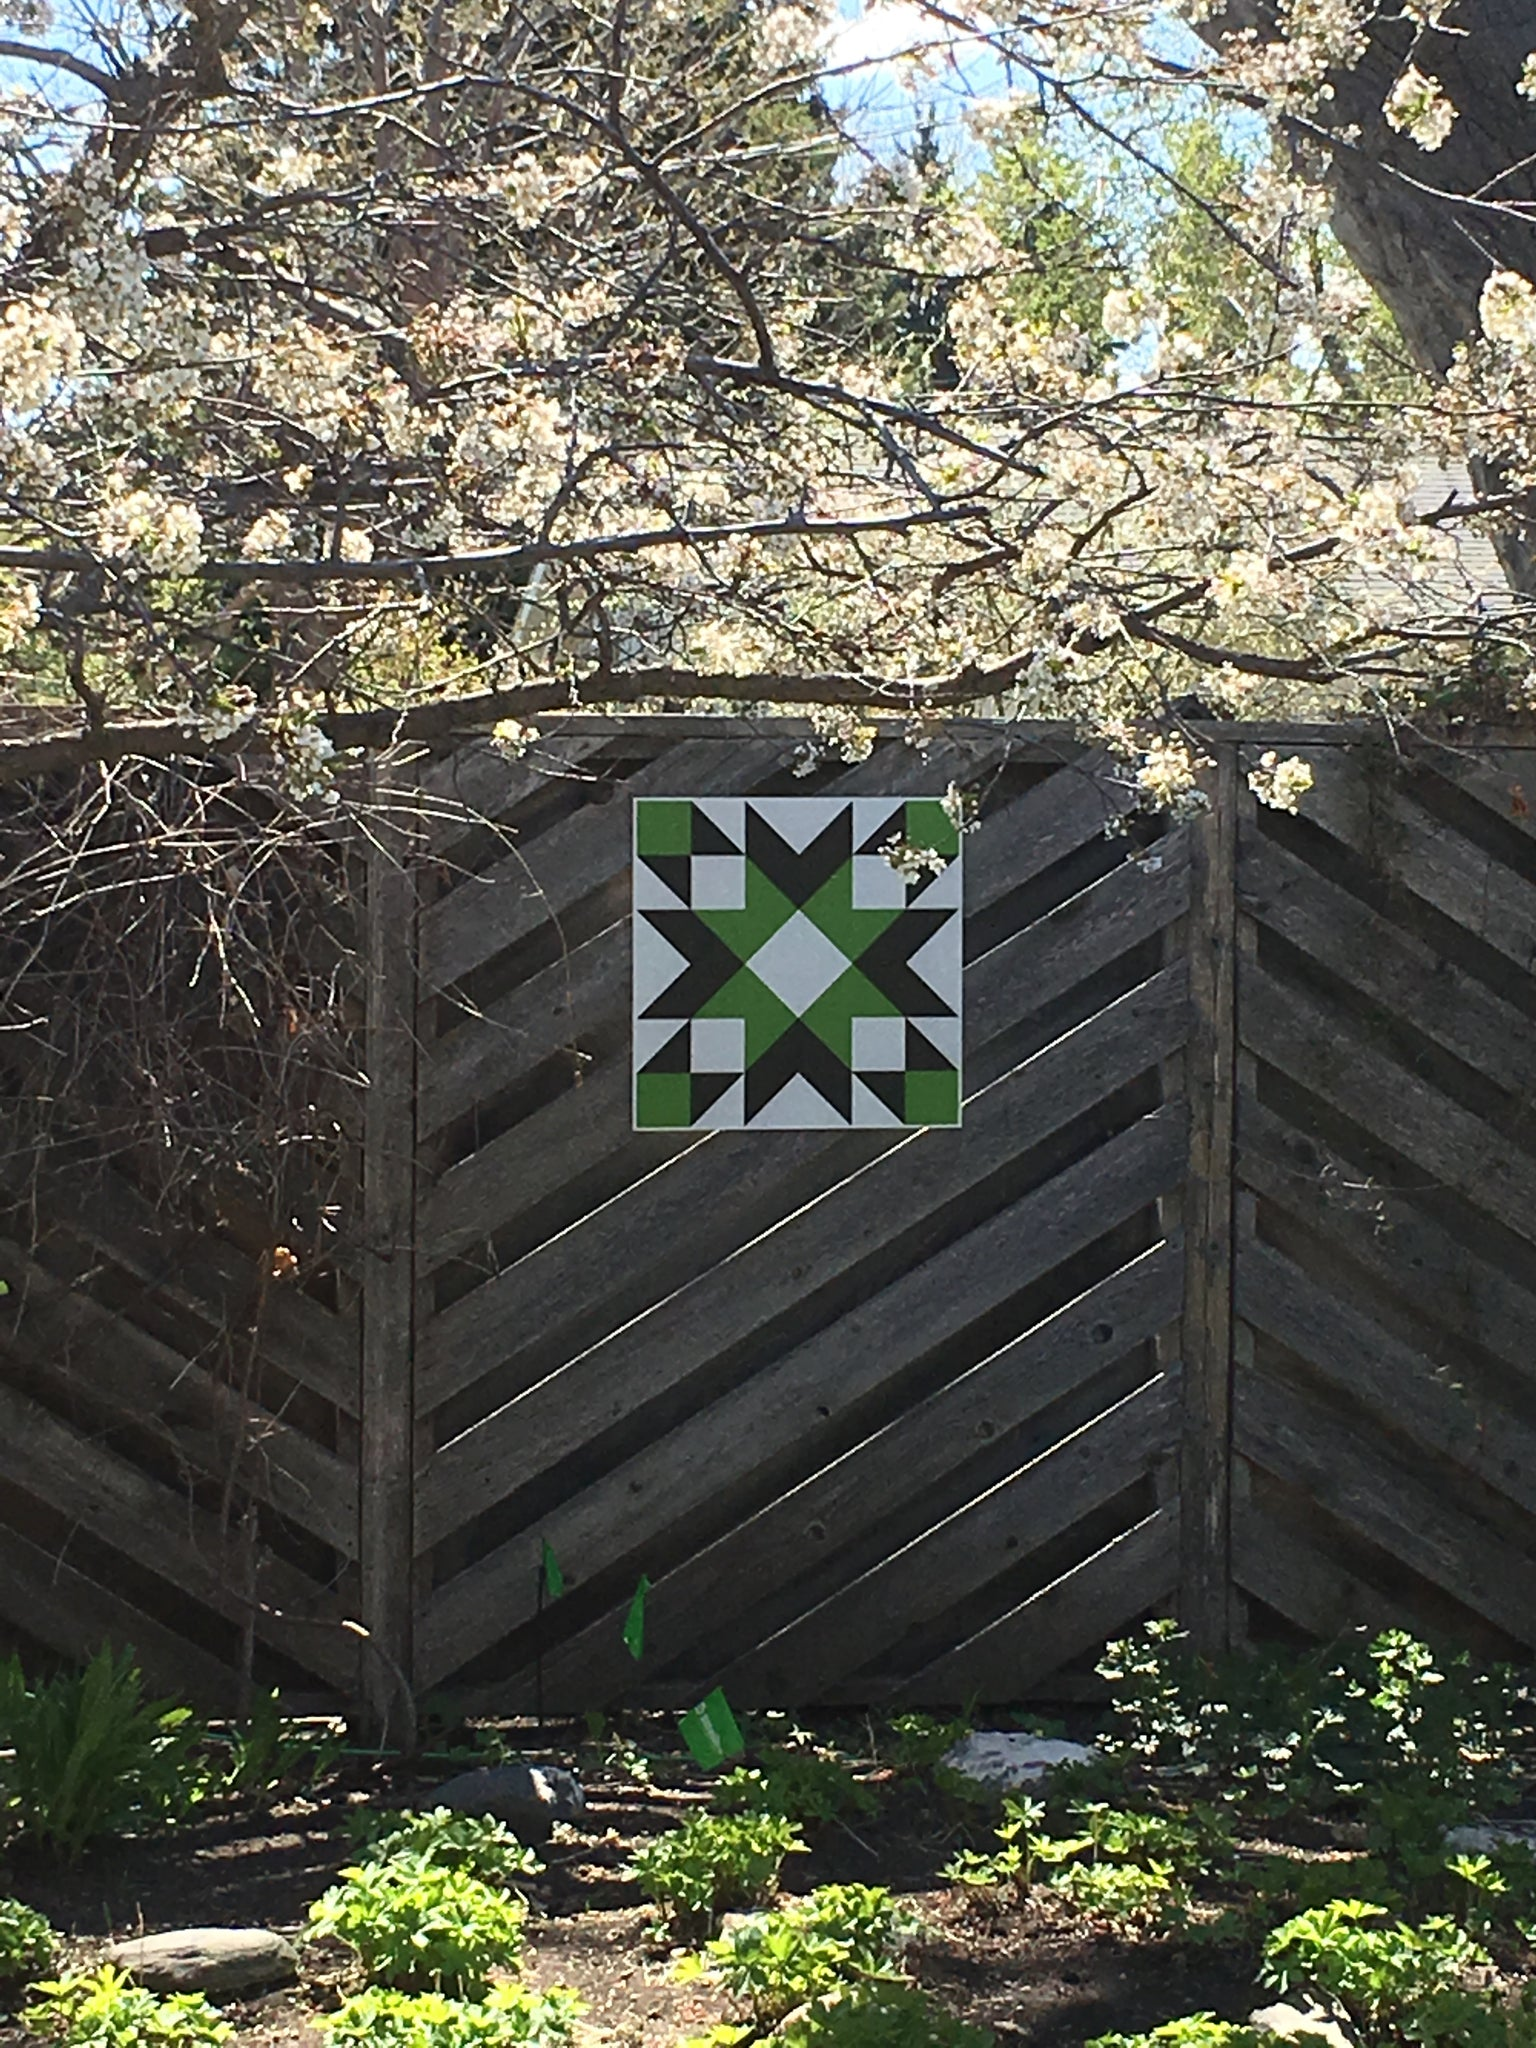 Go Team Go - Backyard Barn Quilt - Quilt Designs in the Yard